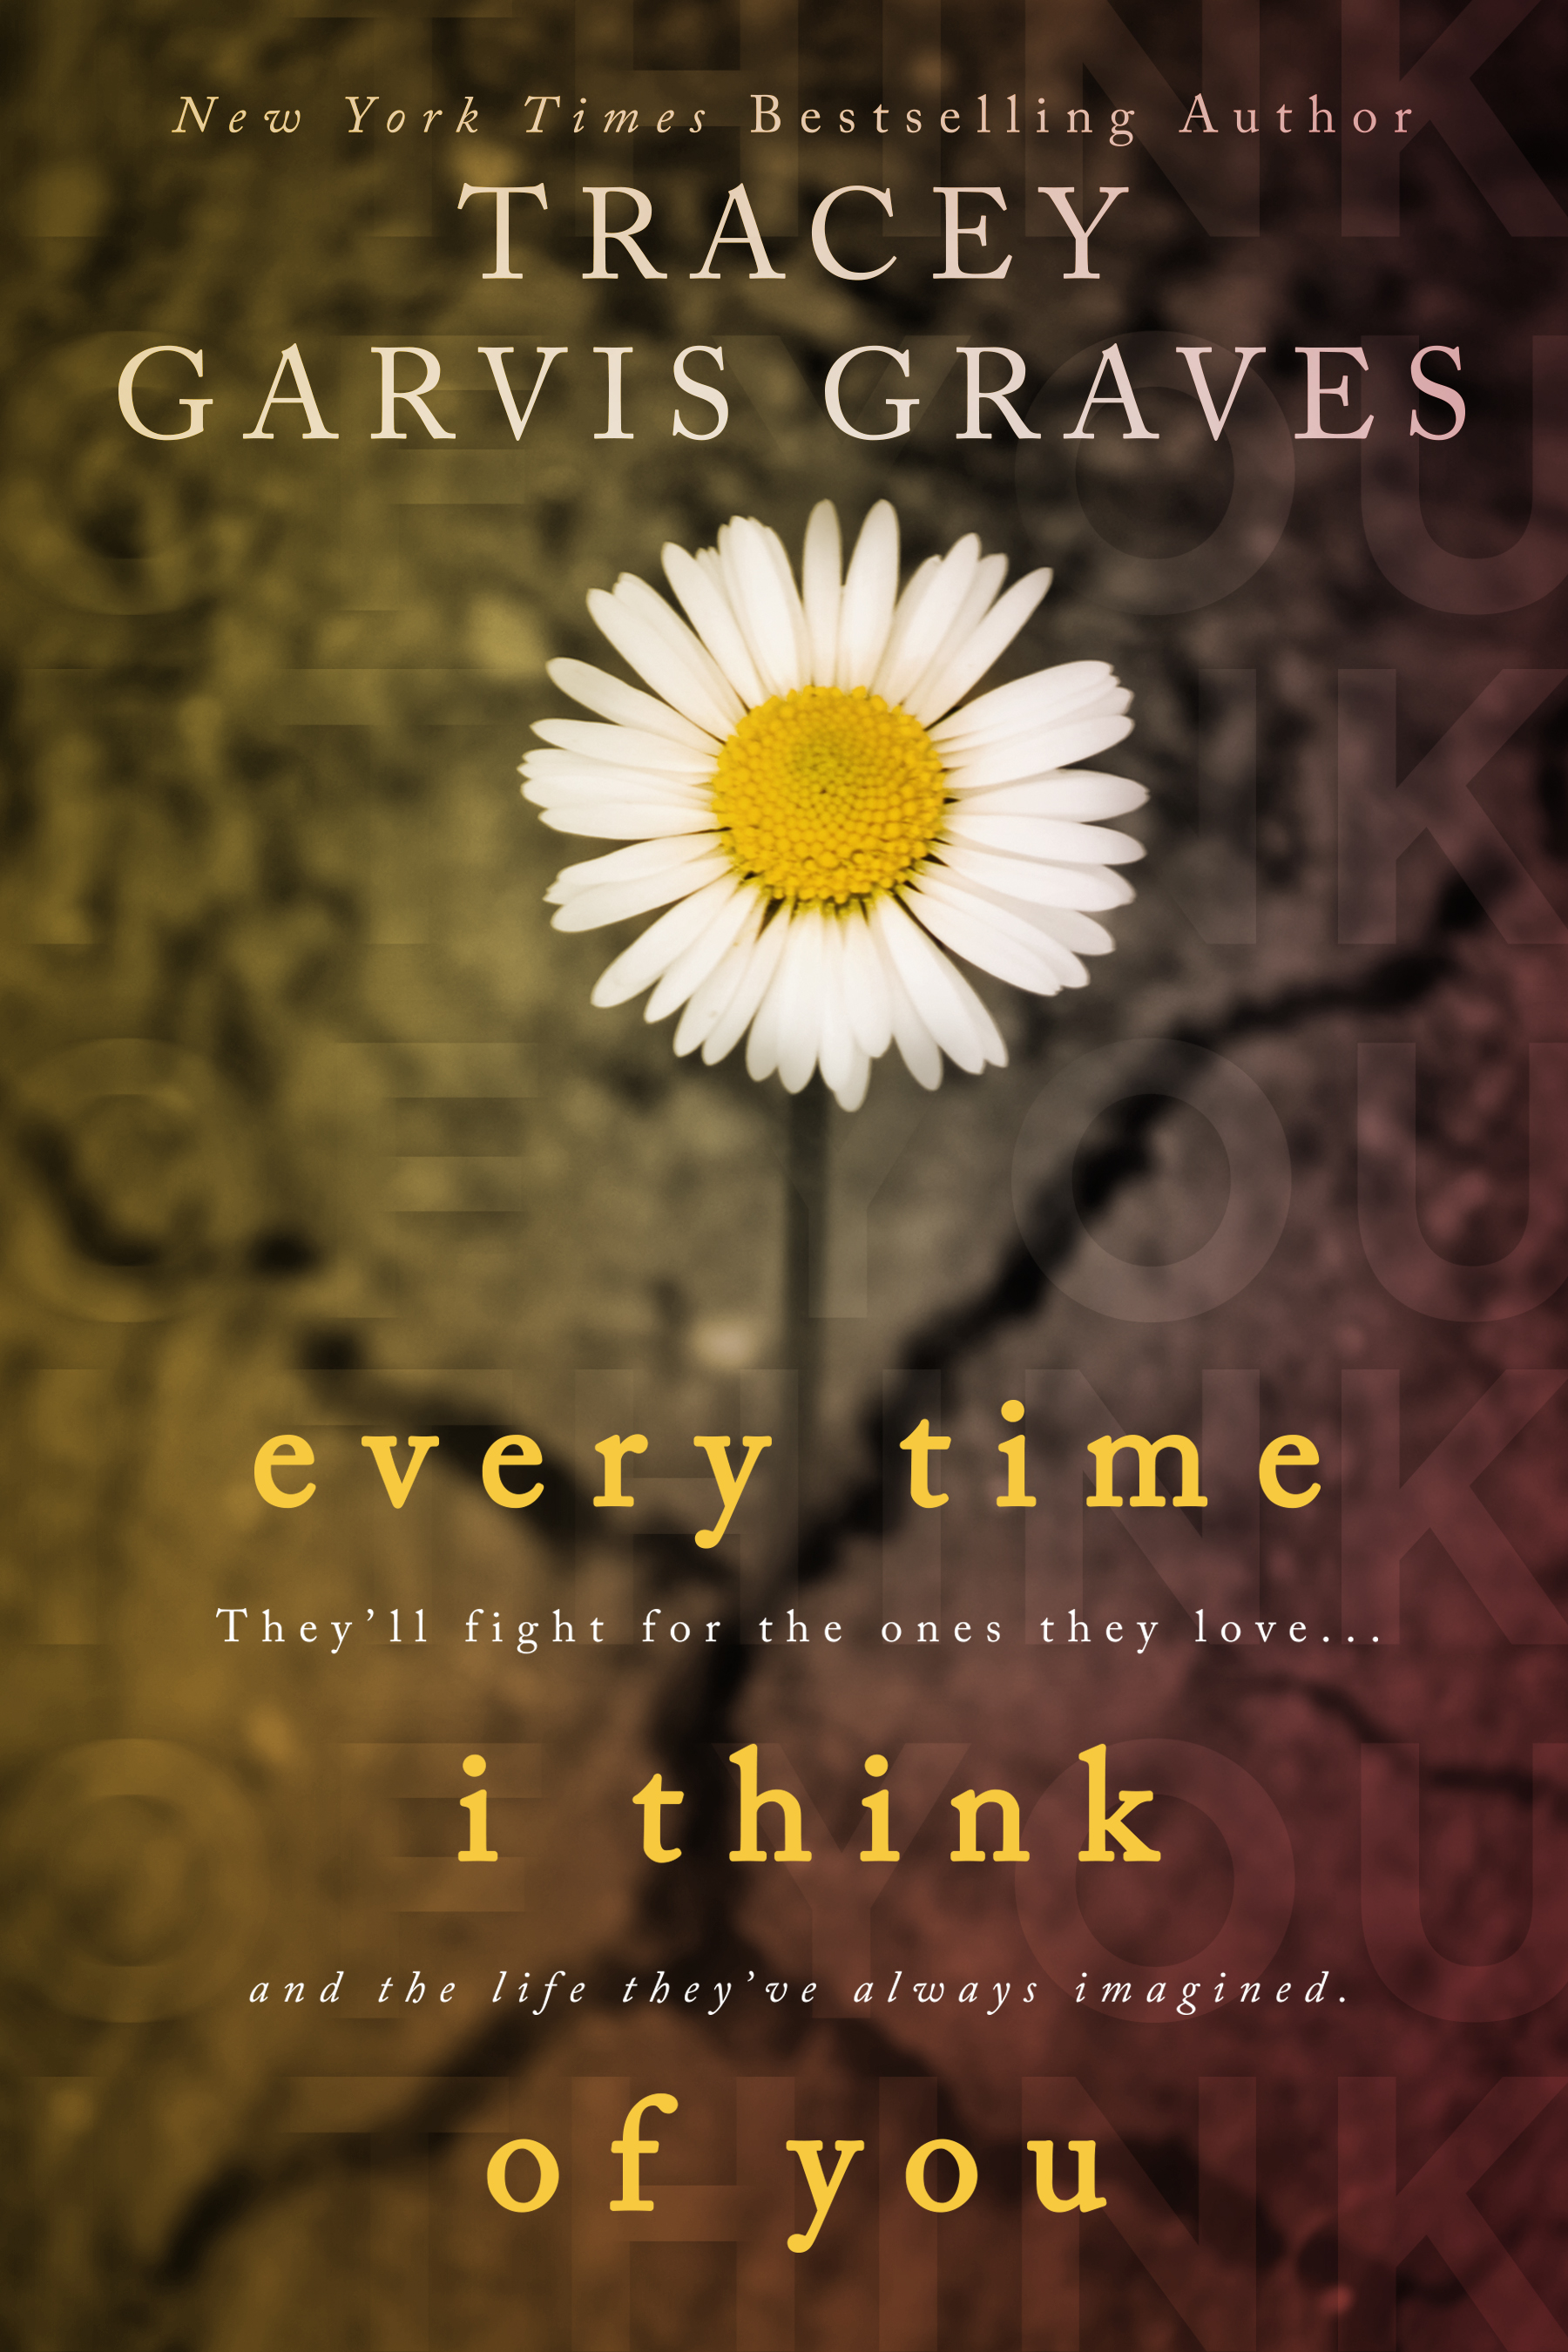 Every Time I think of you de Tracey Garvis Graves Every-time-i-think-of-you-by-tracey-garvis-graves